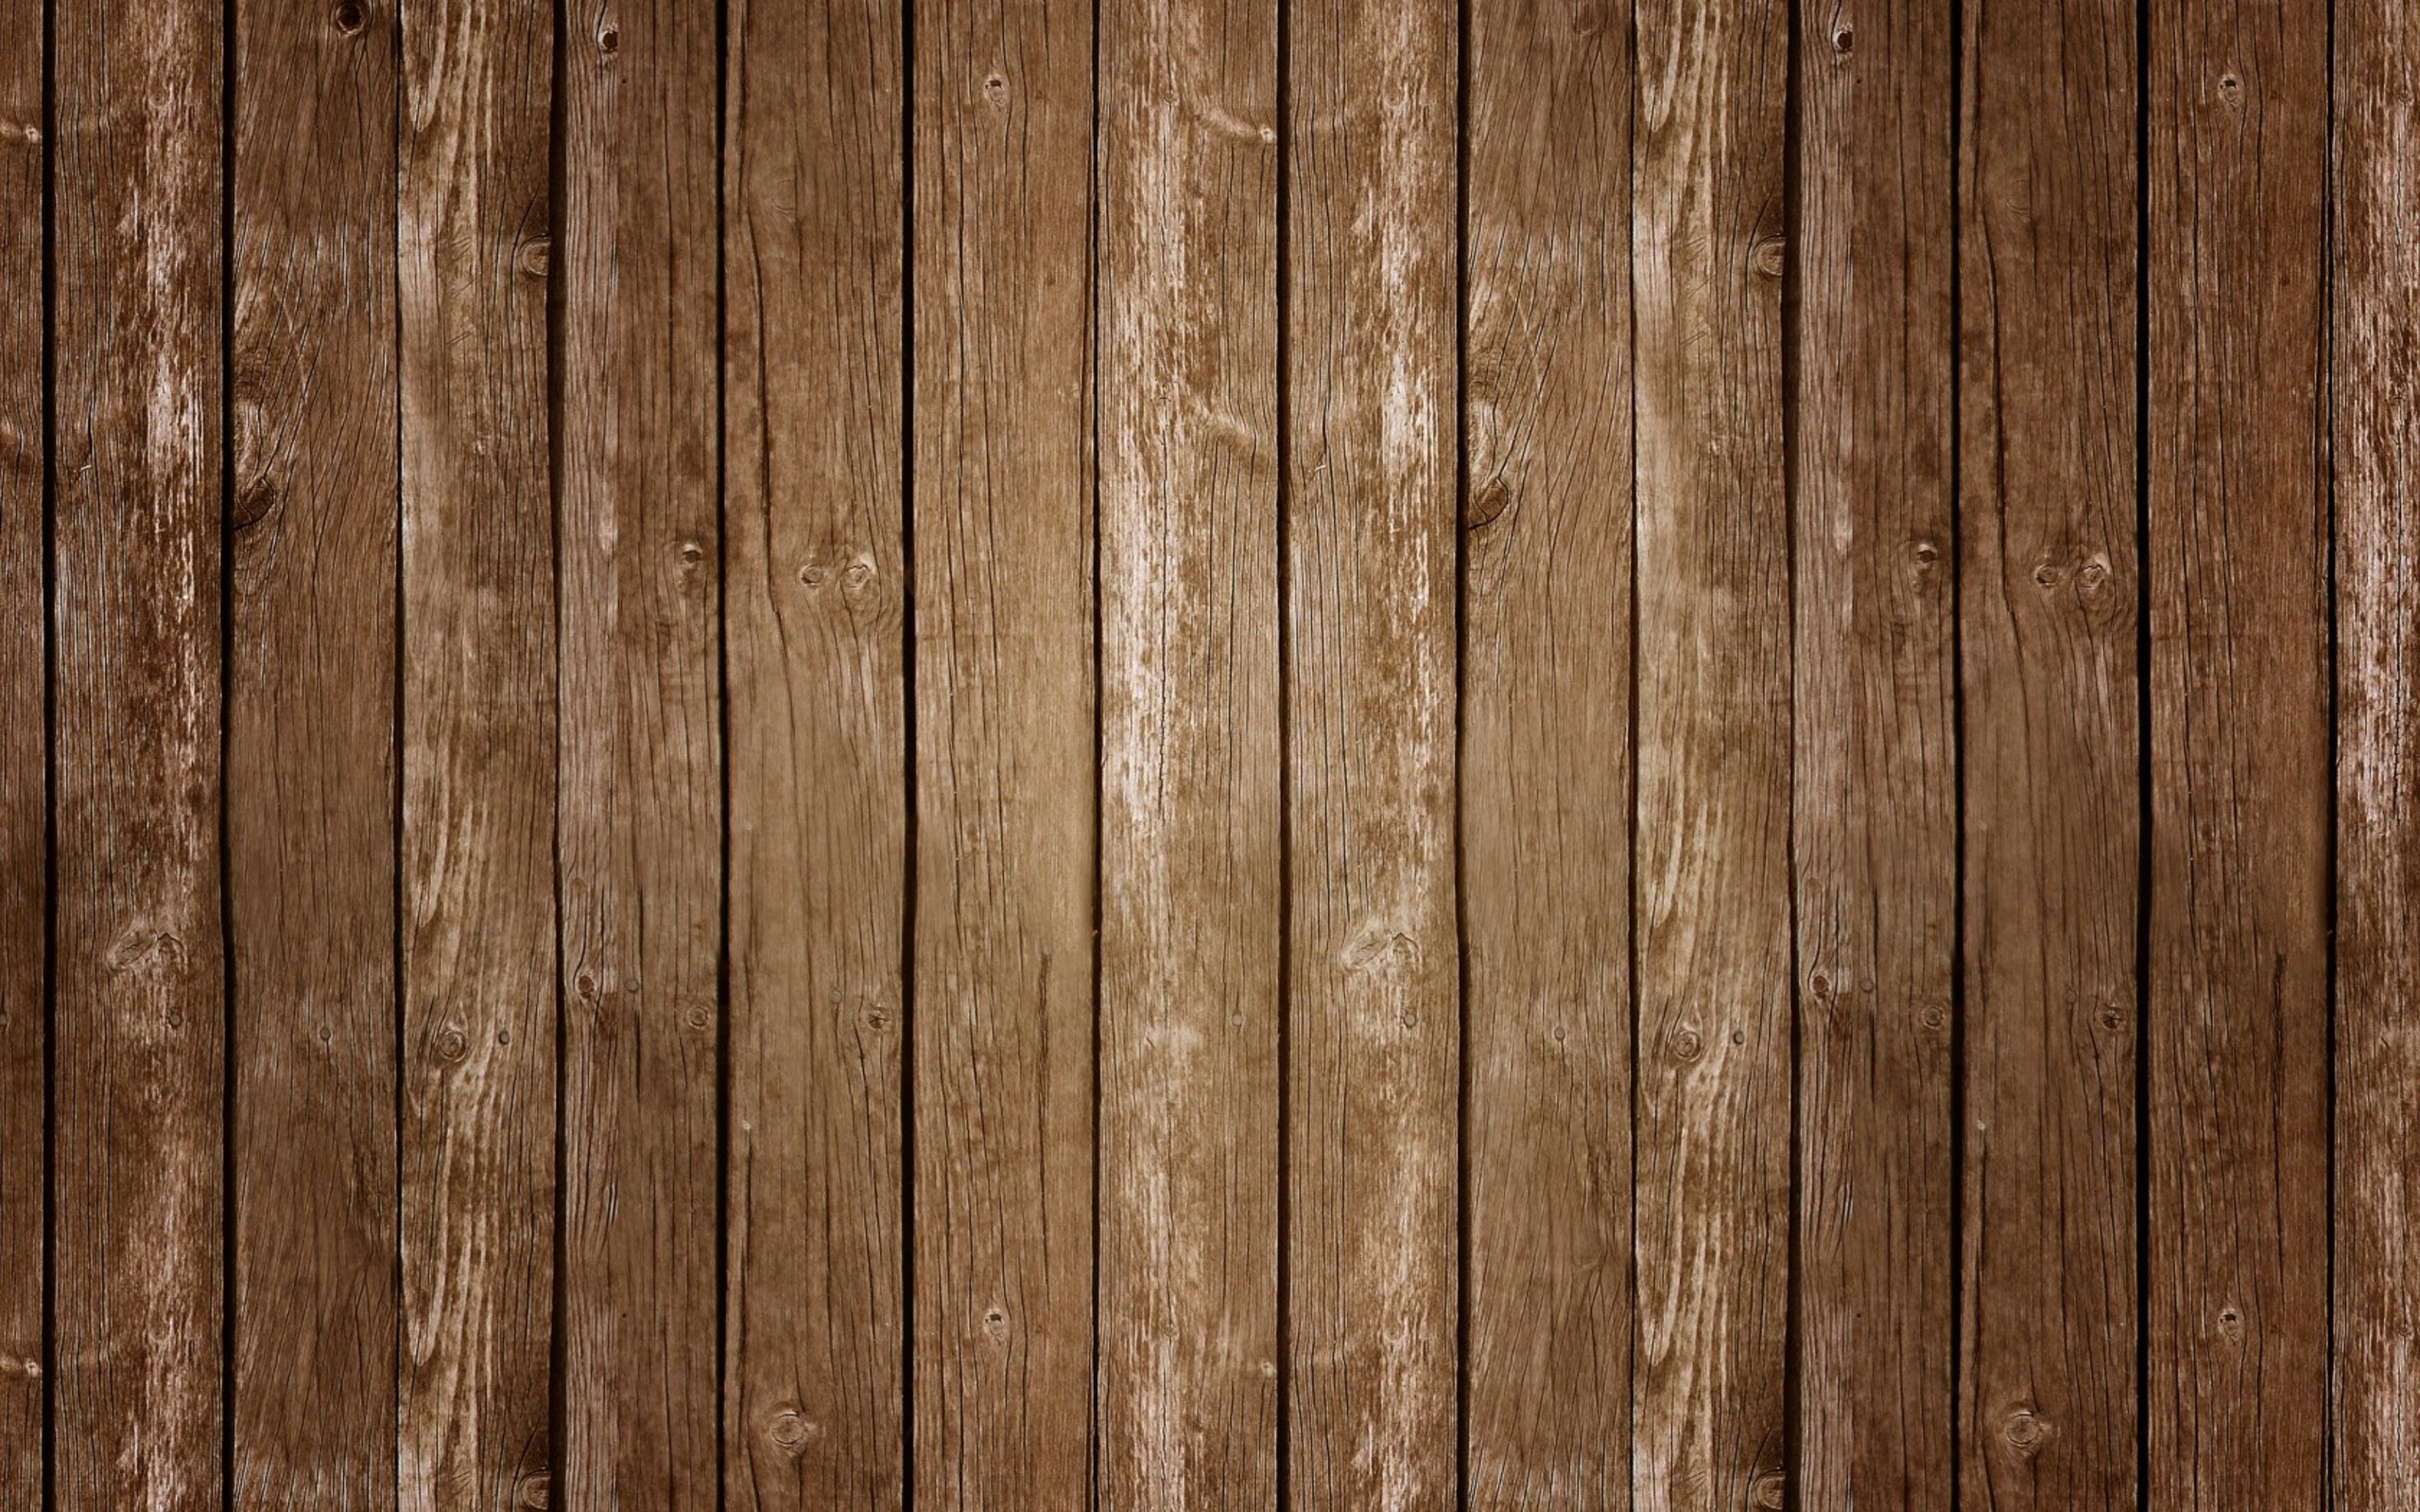 197 wood hd wallpapers | background images - wallpaper abyss